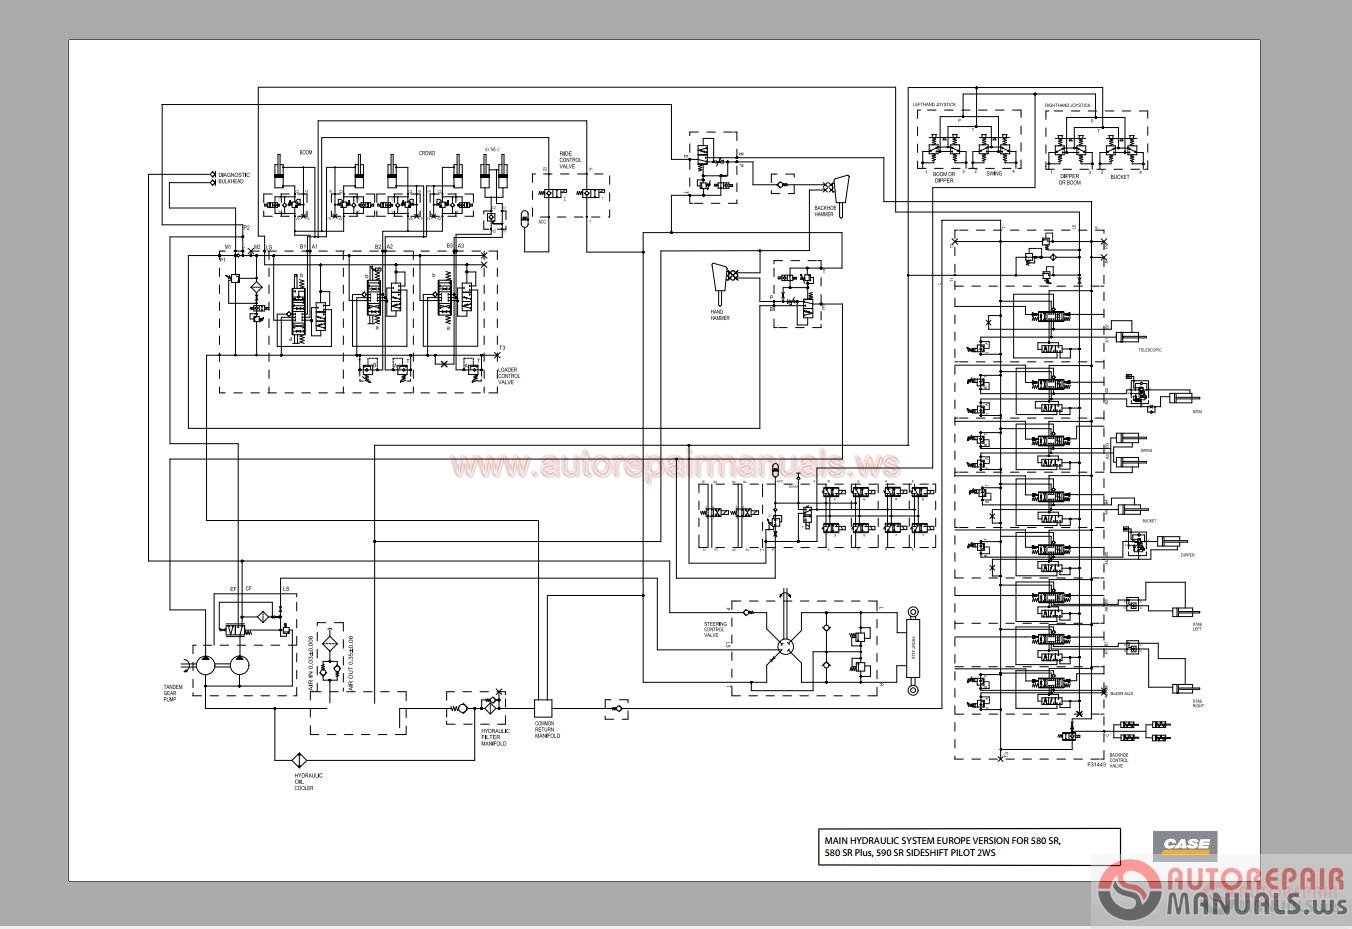 case 1845c skid steer wiring diagram case 450c dozer parts